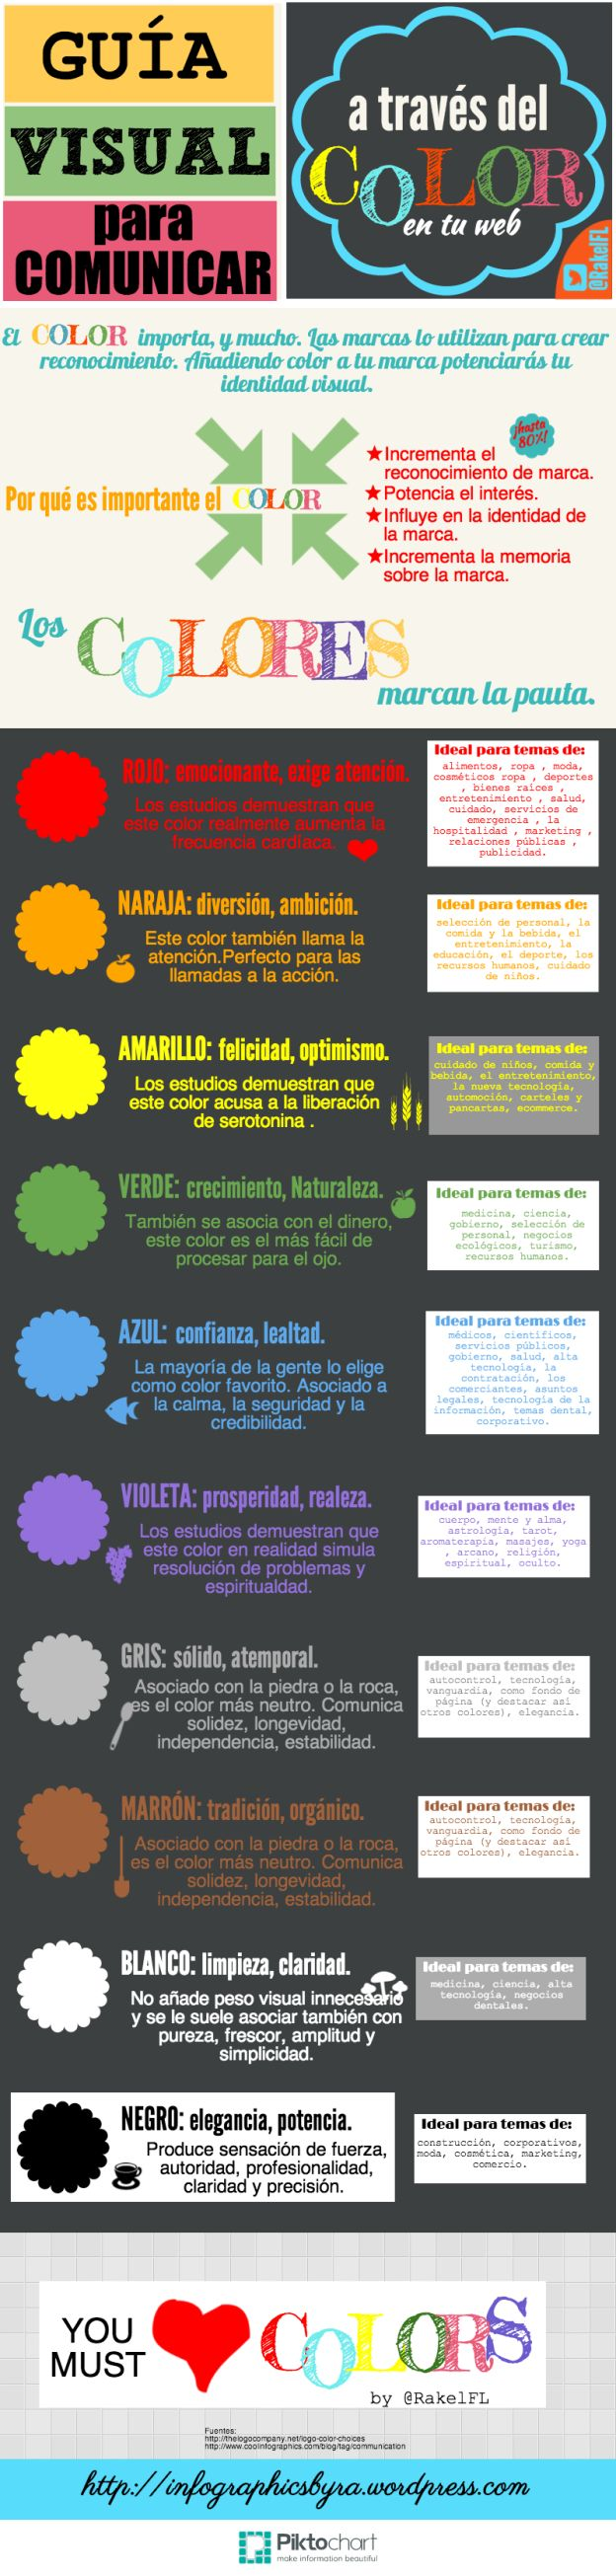 Colors in Spanish: Visual guide for the use of colors on websites, but also fun for kids learning colors in Spanish! Guía visual para comunicar con el color en tu página web. #infografia colores #Infographic colors